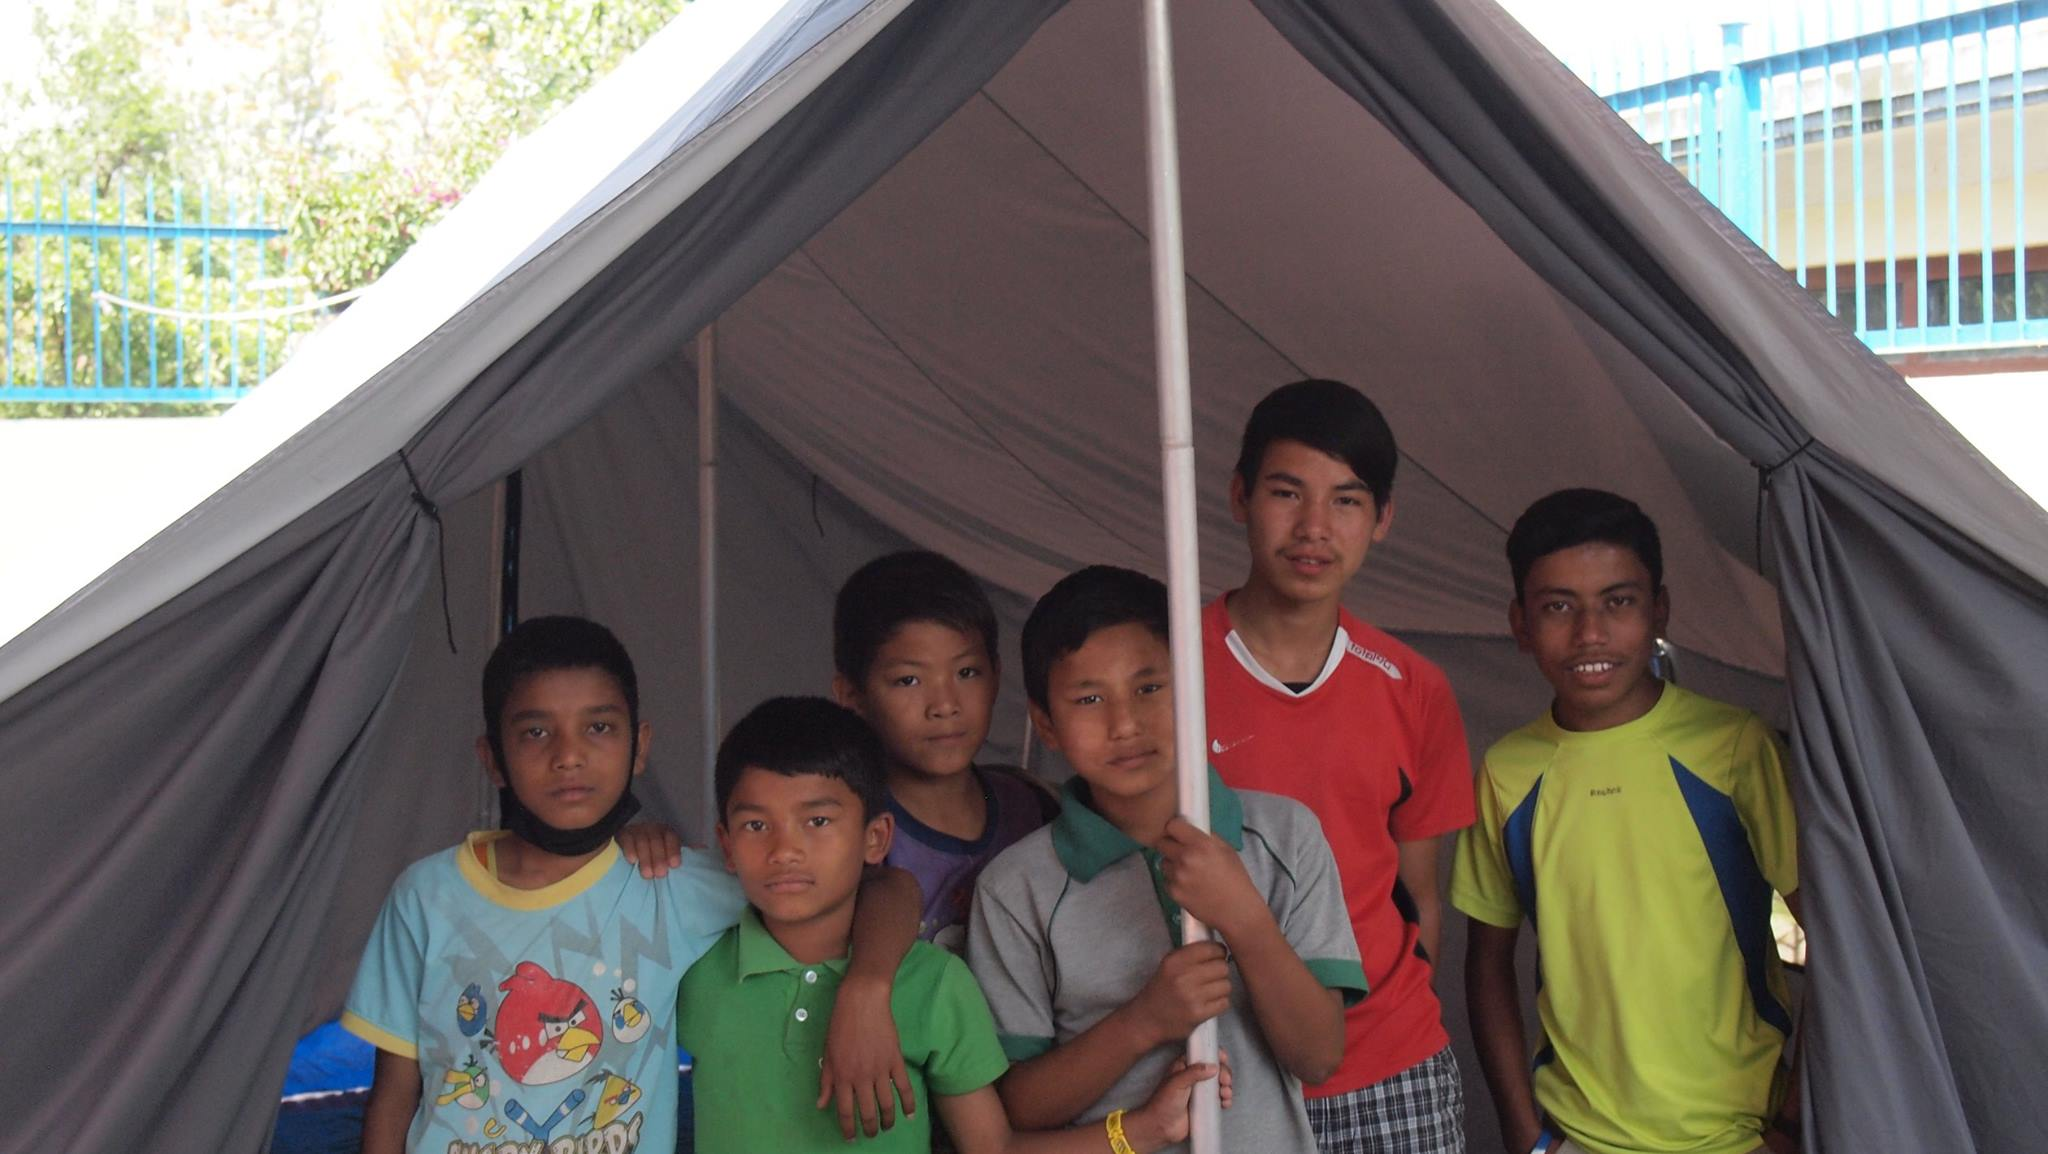 Christians bring aid to overlooked villages in Nepal